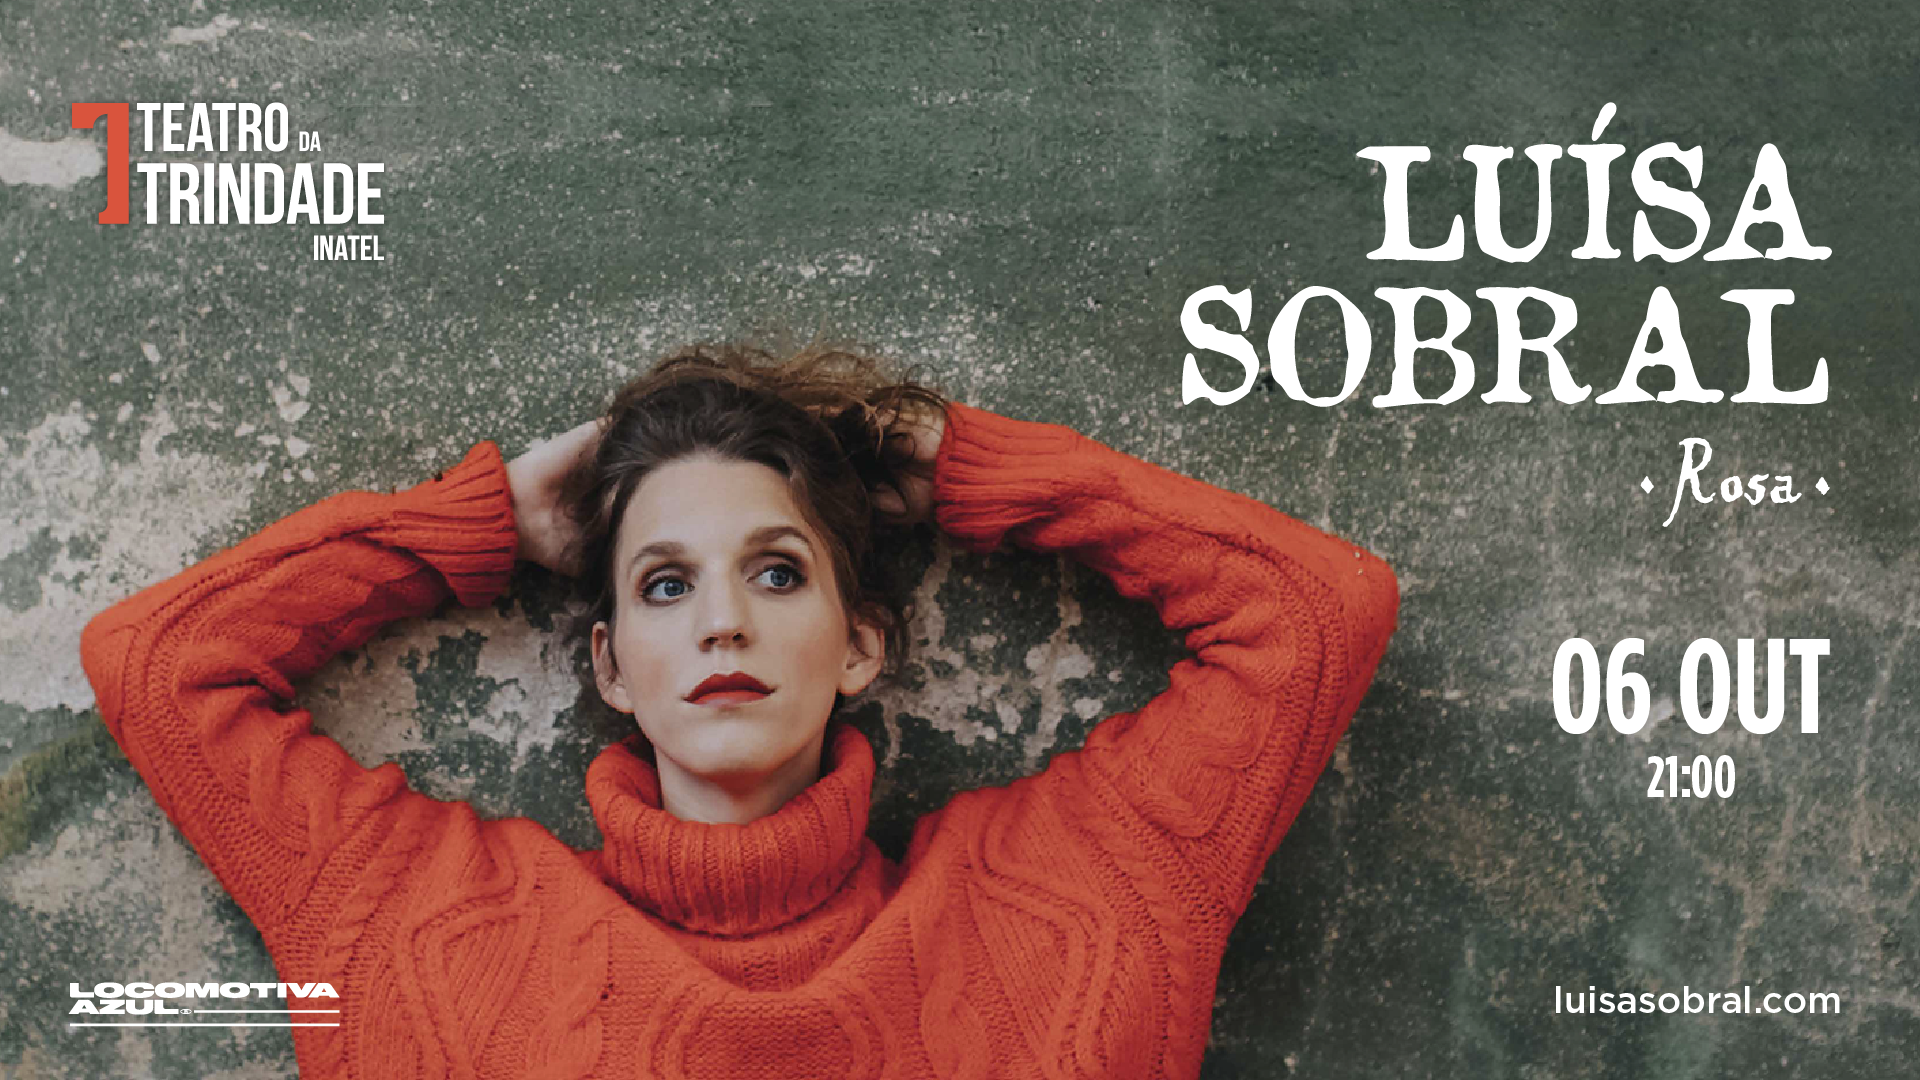 Photo of Luísa Sobral postpones concert at Teatro da Trindade INATEL